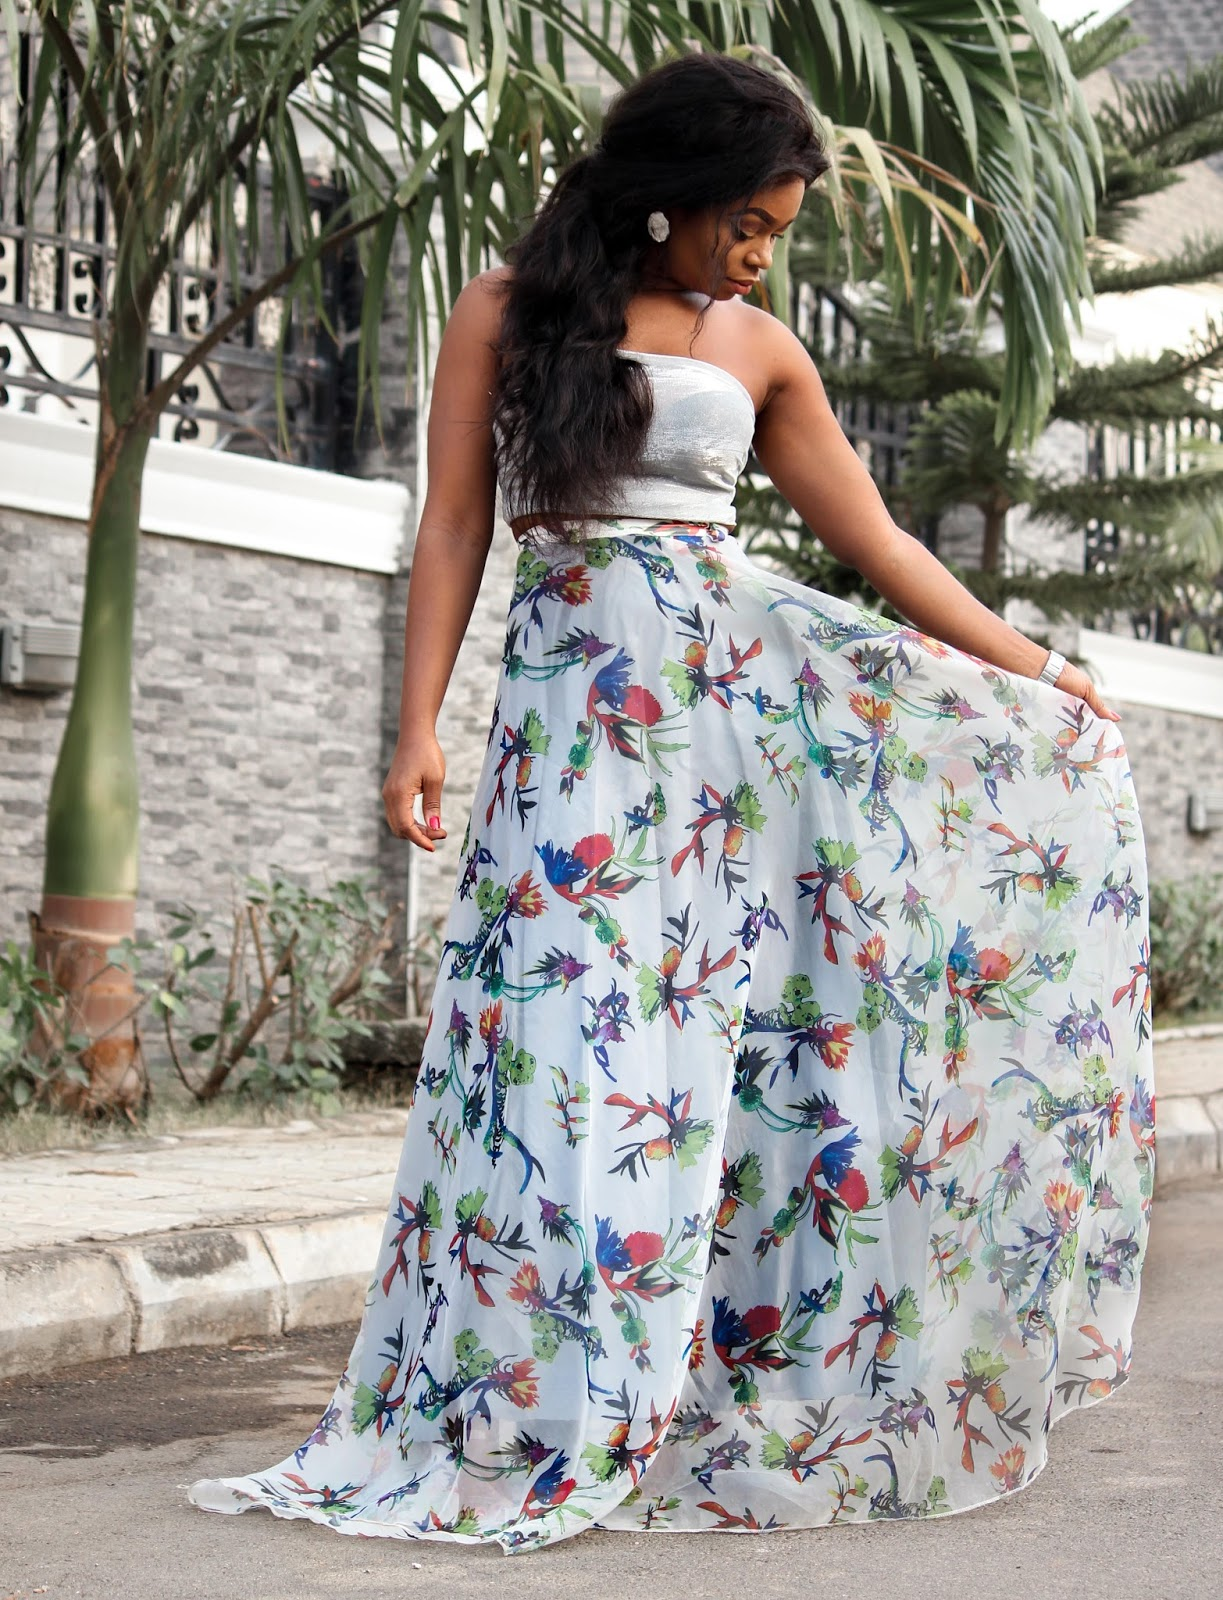 JUST PORSHHER - Printed Organza Maxi Skirt from Porshher with  Porshher scarf top and Public desire sandals